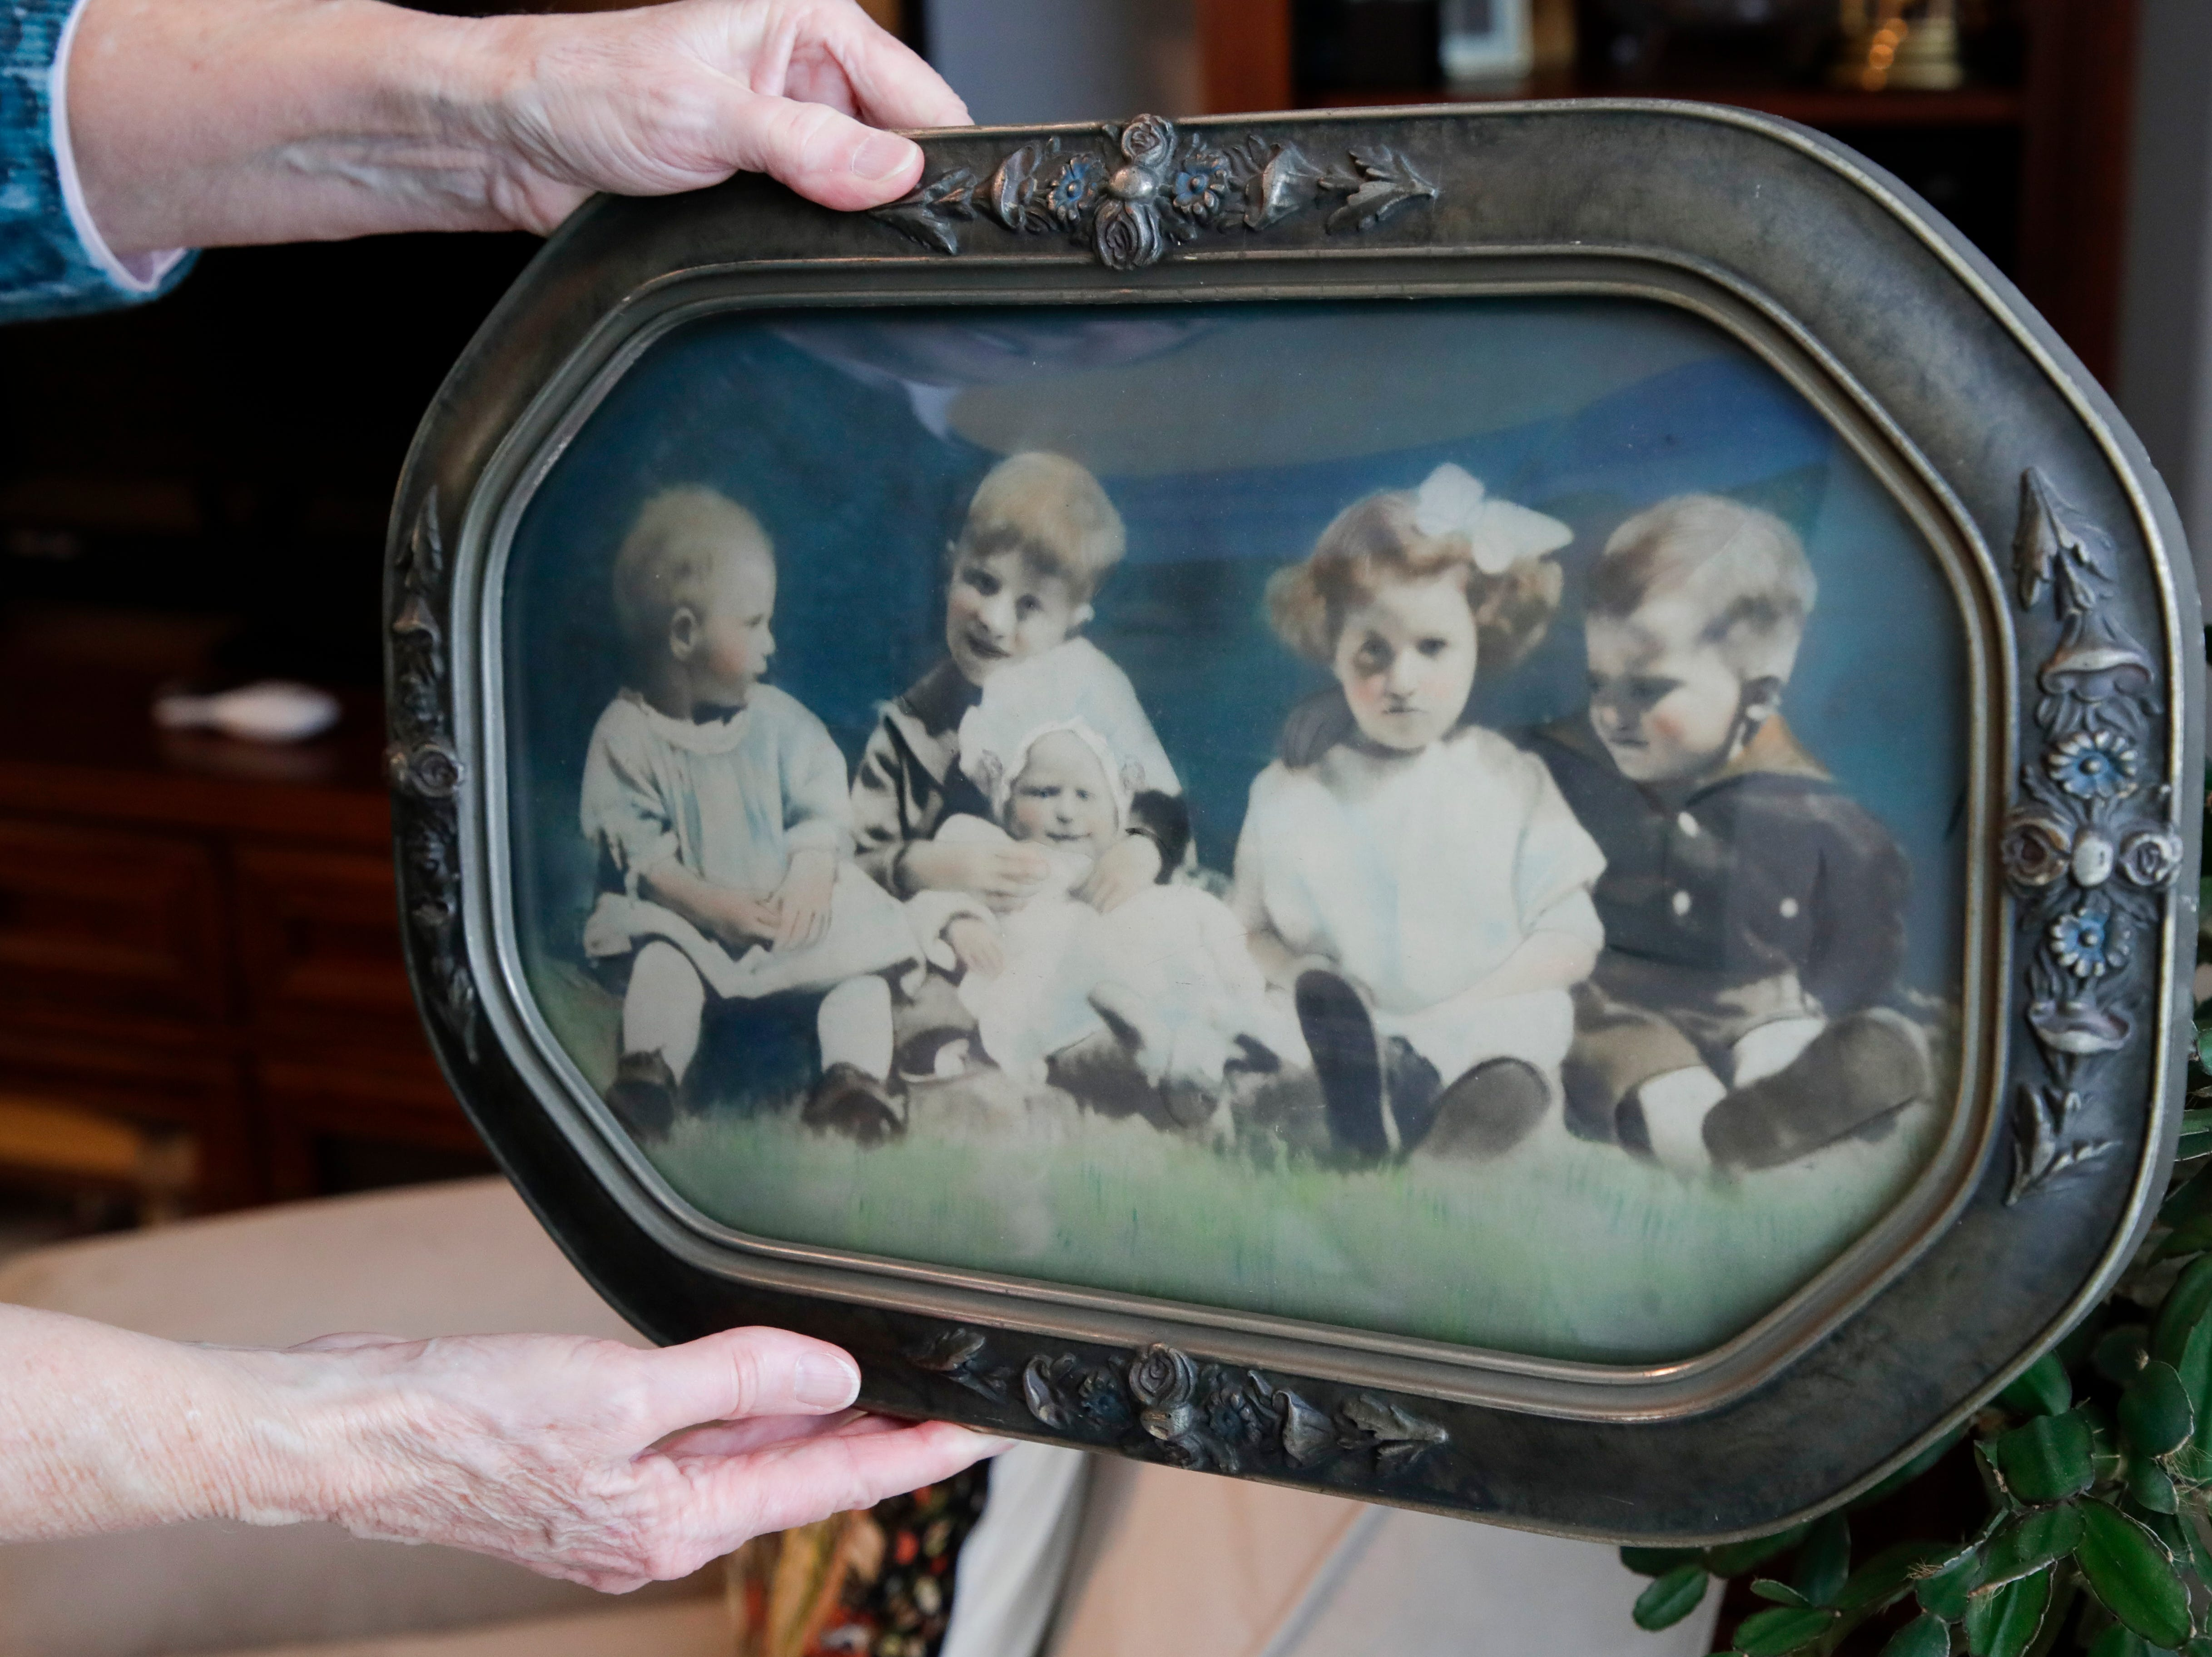 Sandy DeLopez holds a photo from her mother Emily Golz's childhood. The photo shows Golz, the youngest, being held in the lap of her oldest brother Earl Baum, who died at Pearl Harbor in 1941. Baum's remains were identified last year through DNA. He will be buried March 8, 2019 at Tallahassee National Cemetery.